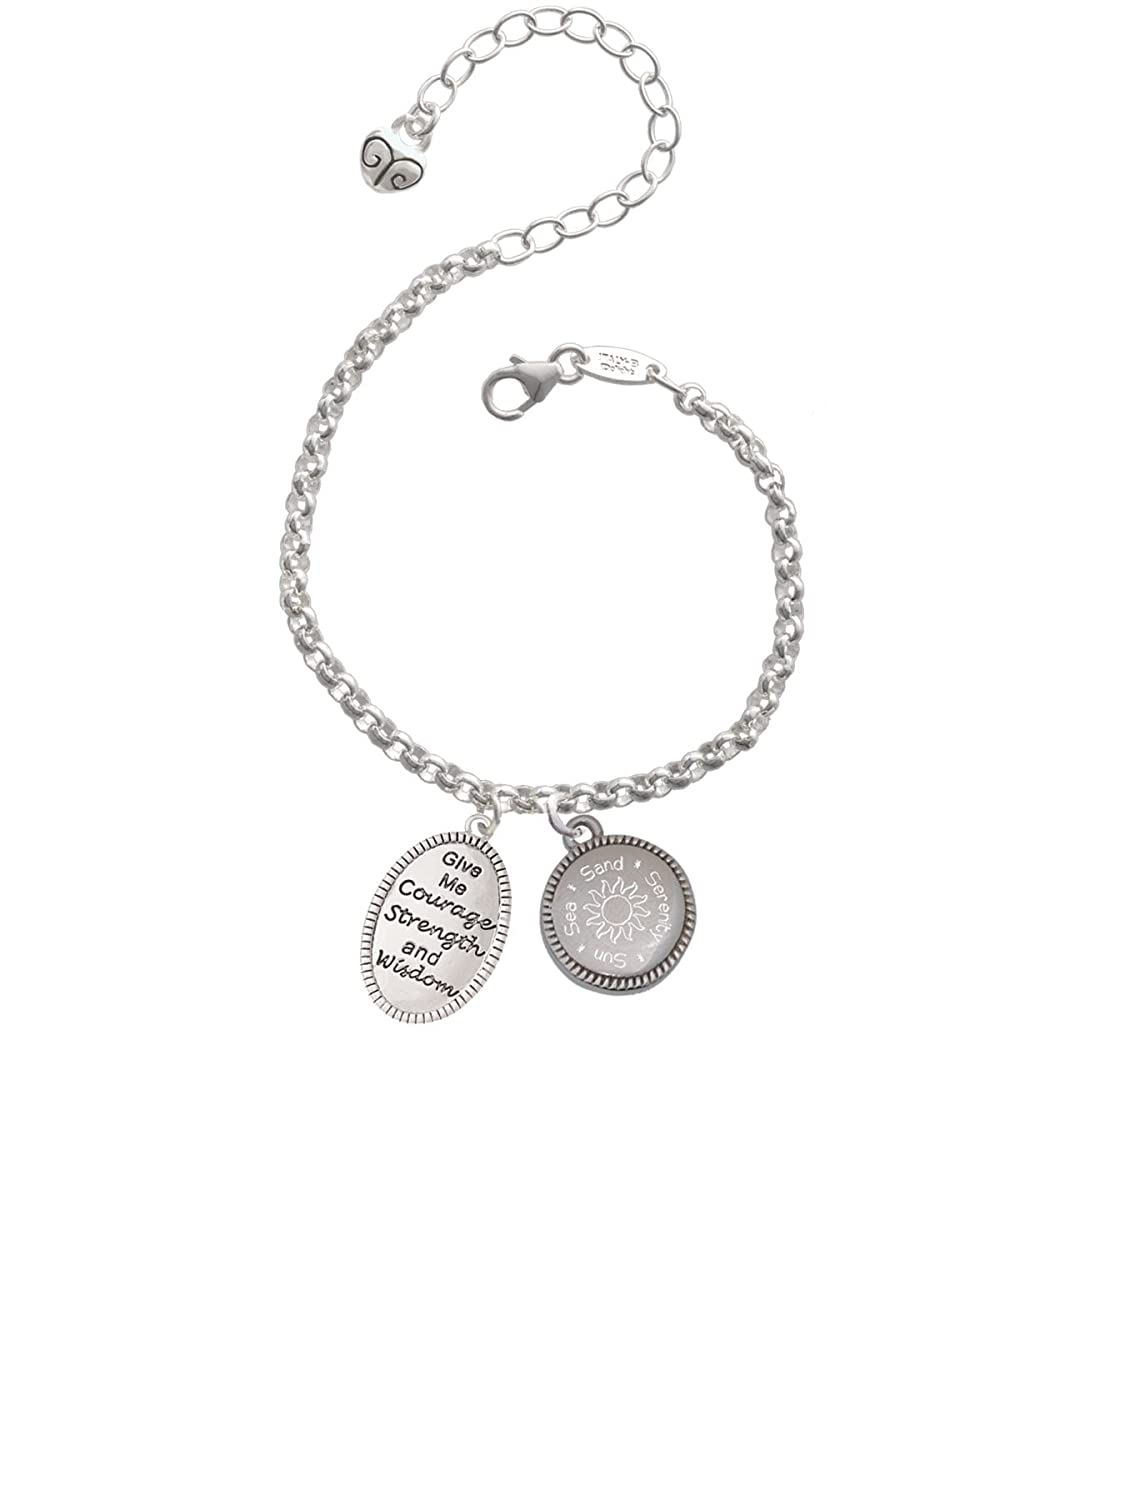 Delight Jewelry Give Me Courage Strength Wisdom Medallion Sun Sea Sand Serenity Engraved Bracelet